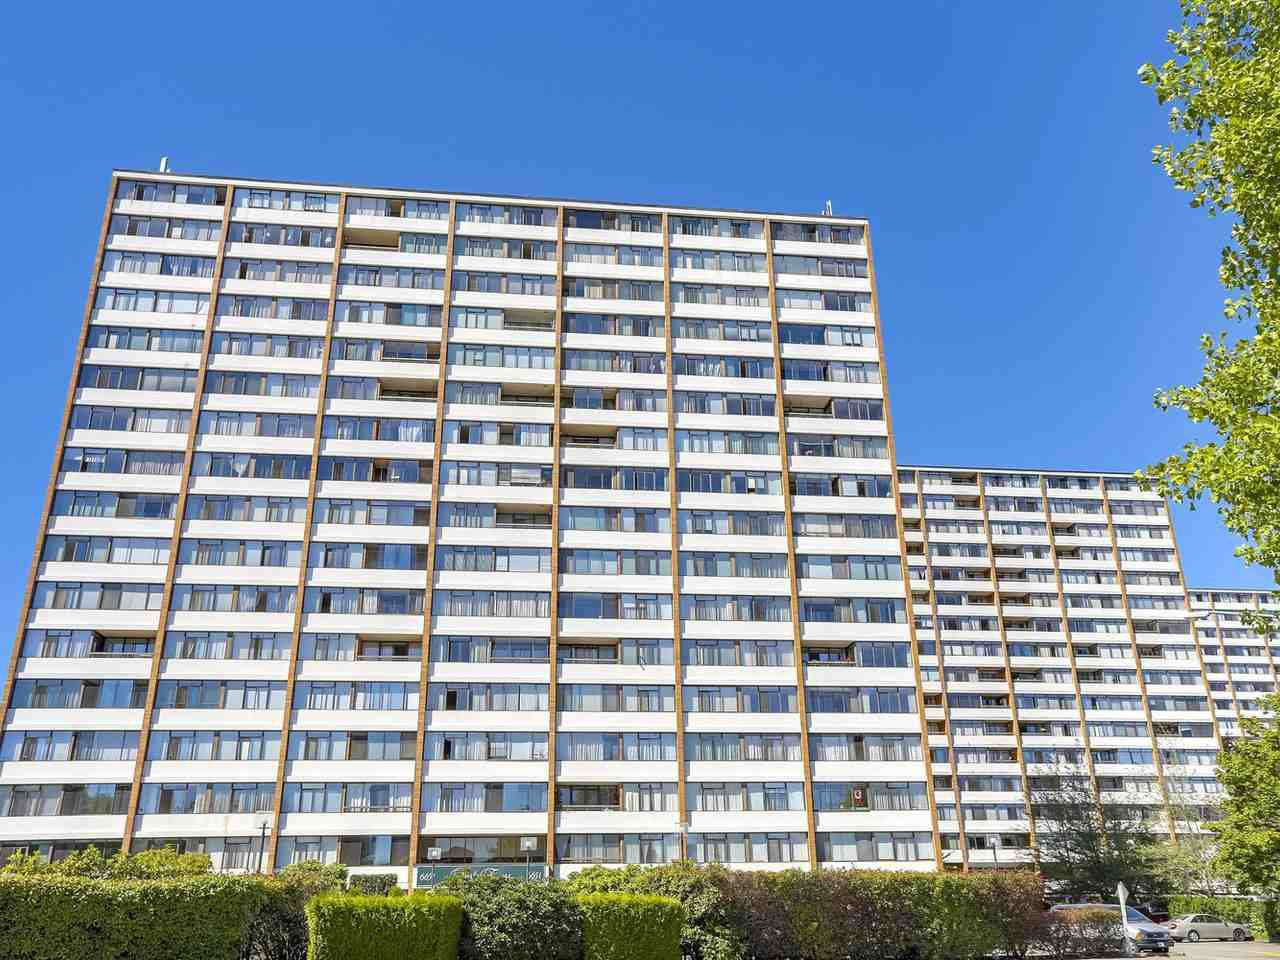 "Main Photo: 1608 6651 MINORU Boulevard in Richmond: Brighouse Condo for sale in ""REGENCY PARK TOWERS"" : MLS®# R2209522"